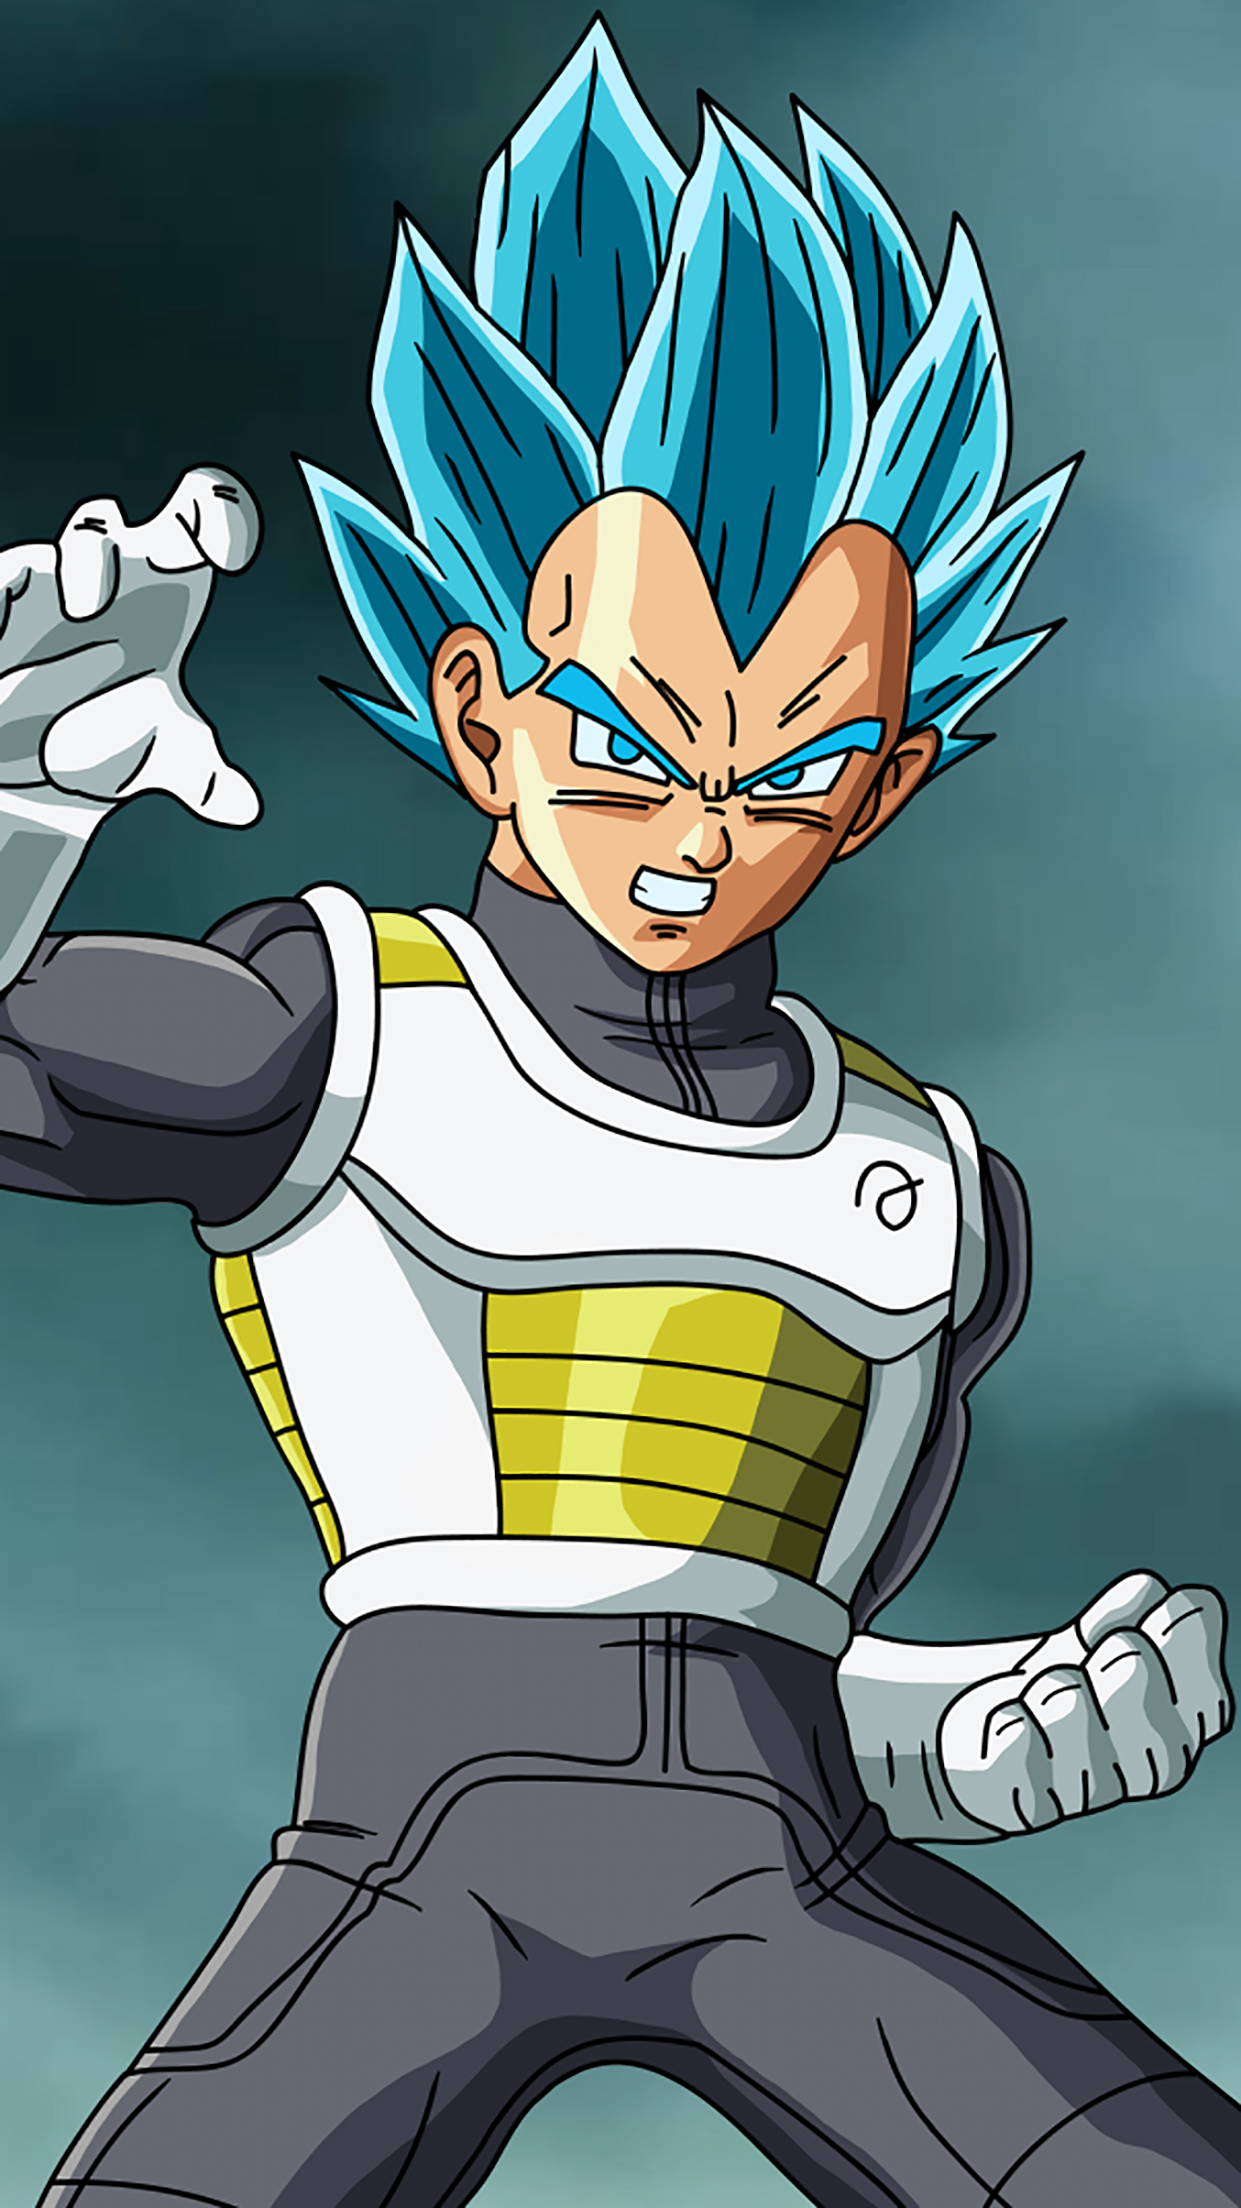 Wallpaper iphone vegeta - Special Vegeta Standig And Mad 3wallpapers Iphone Parallax